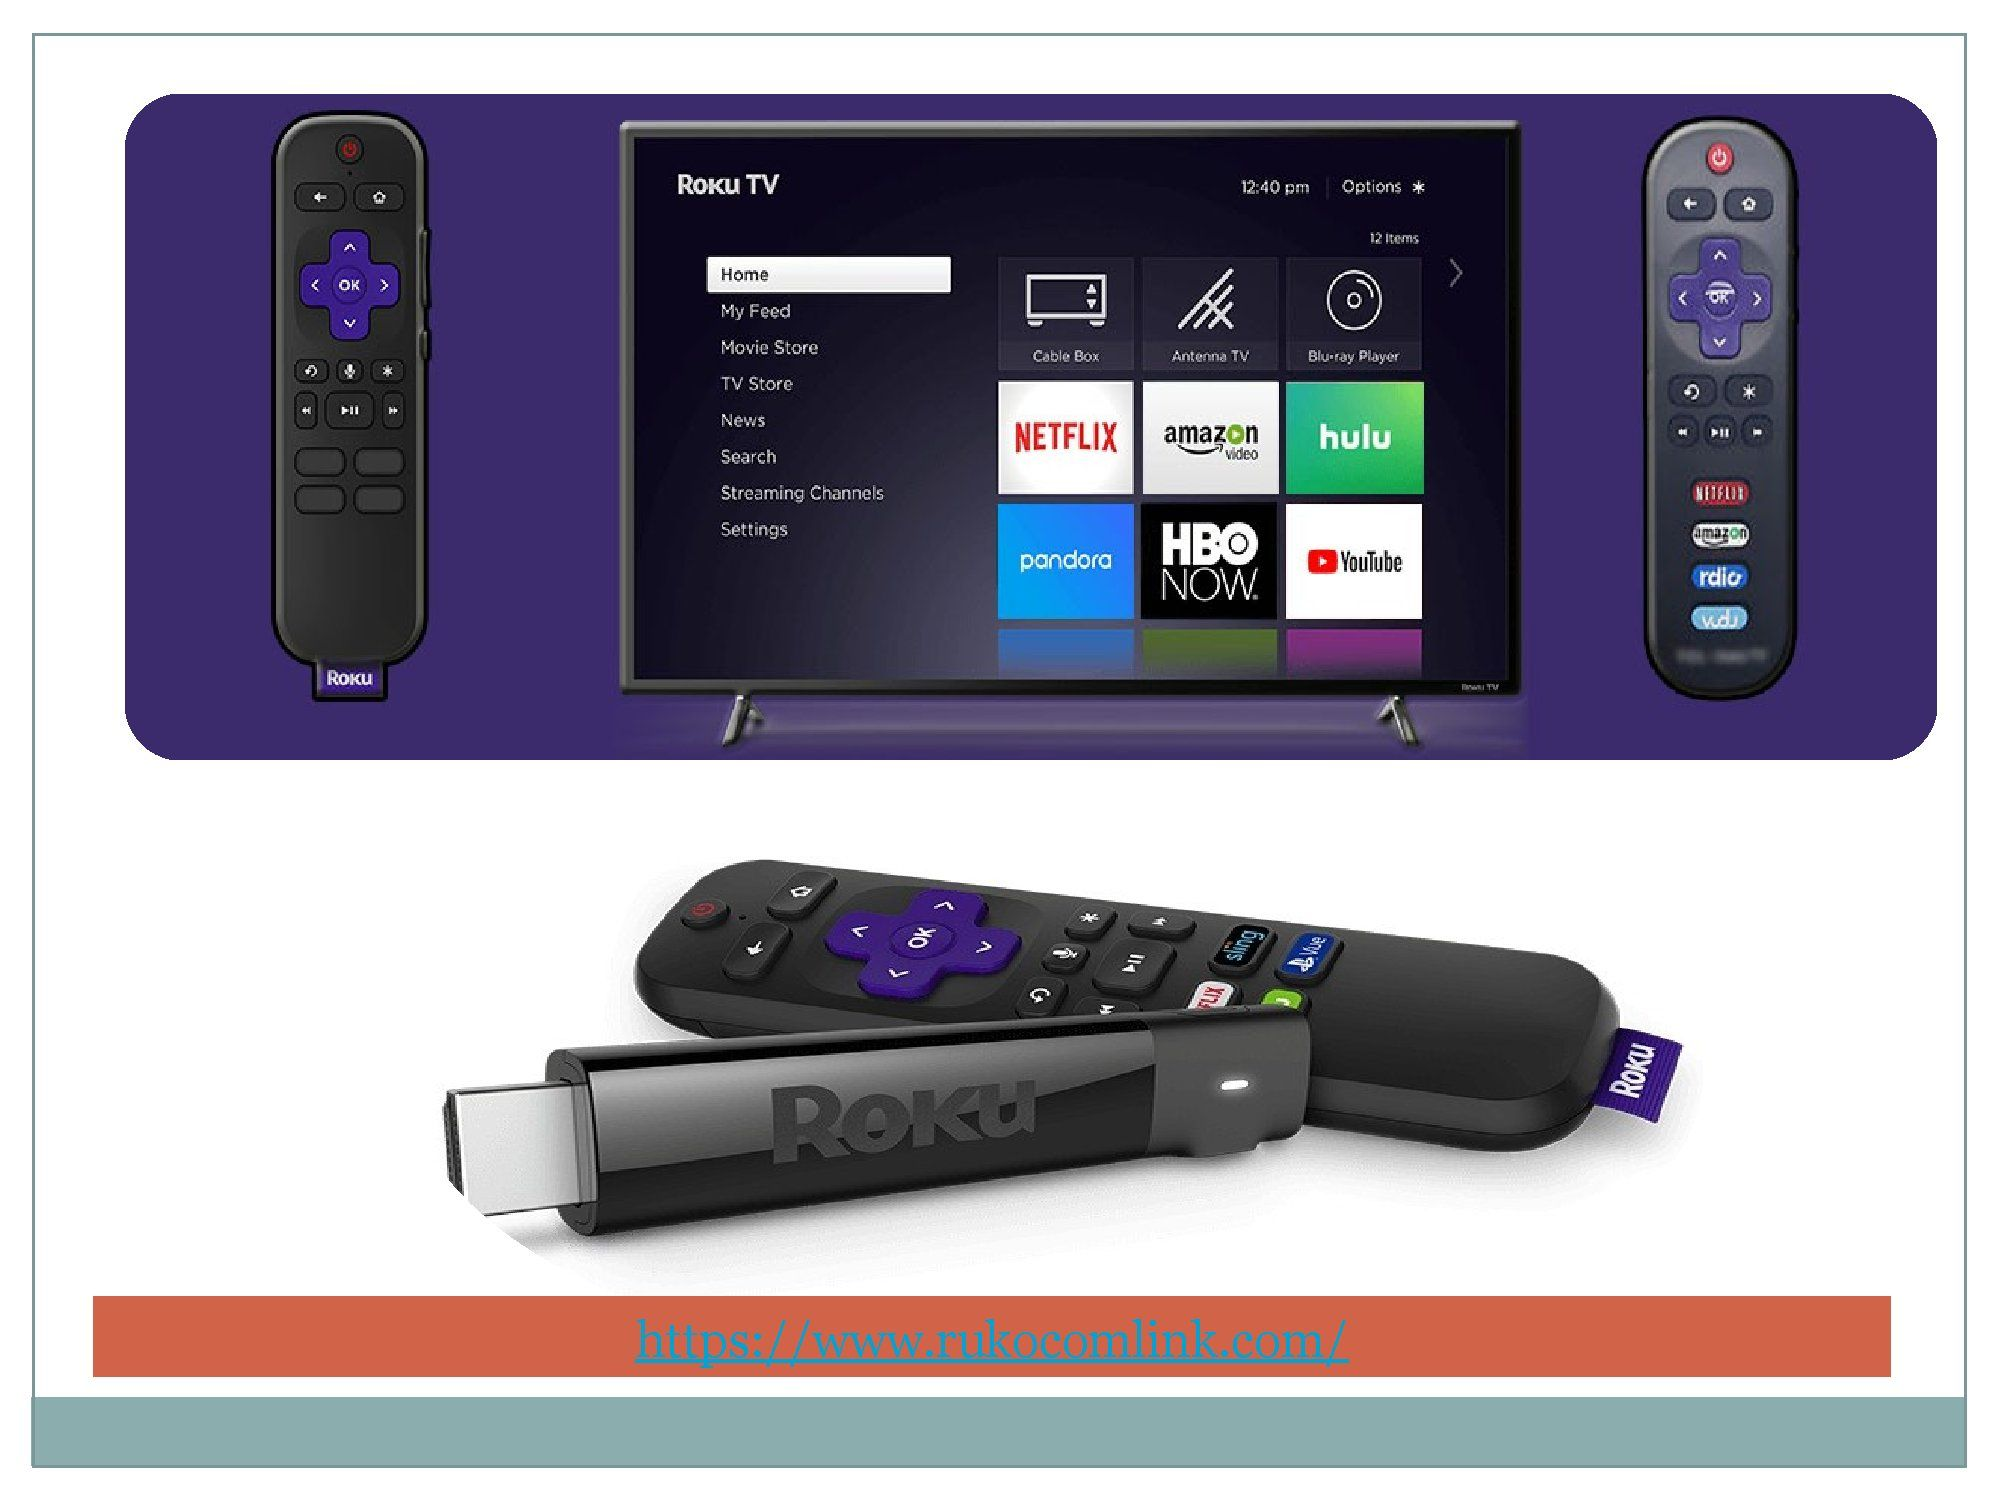 Being a field of roku client care we would advise you